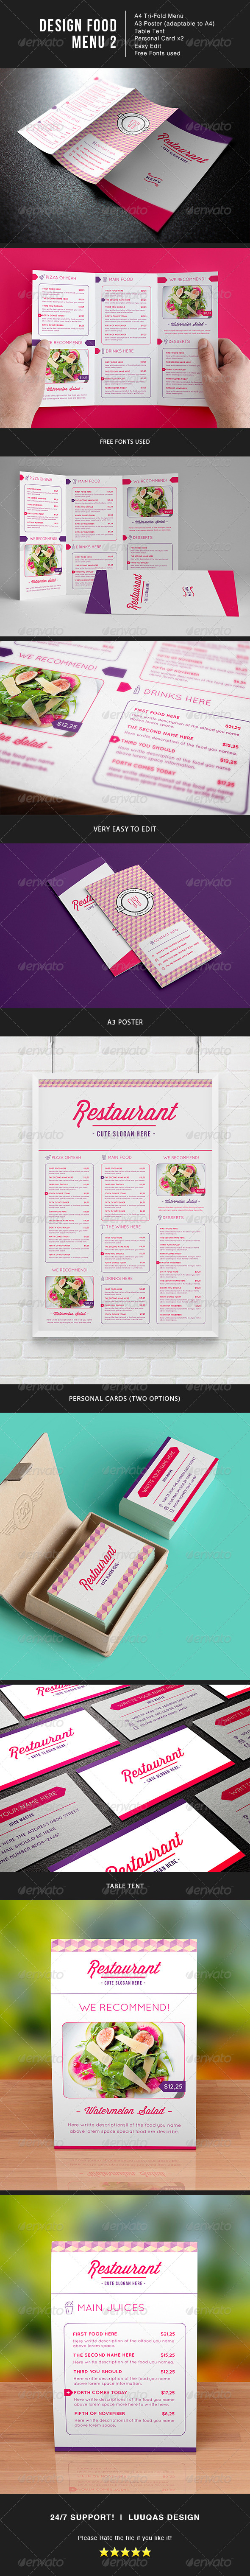 GraphicRiver Design Food Menu 2 8027111